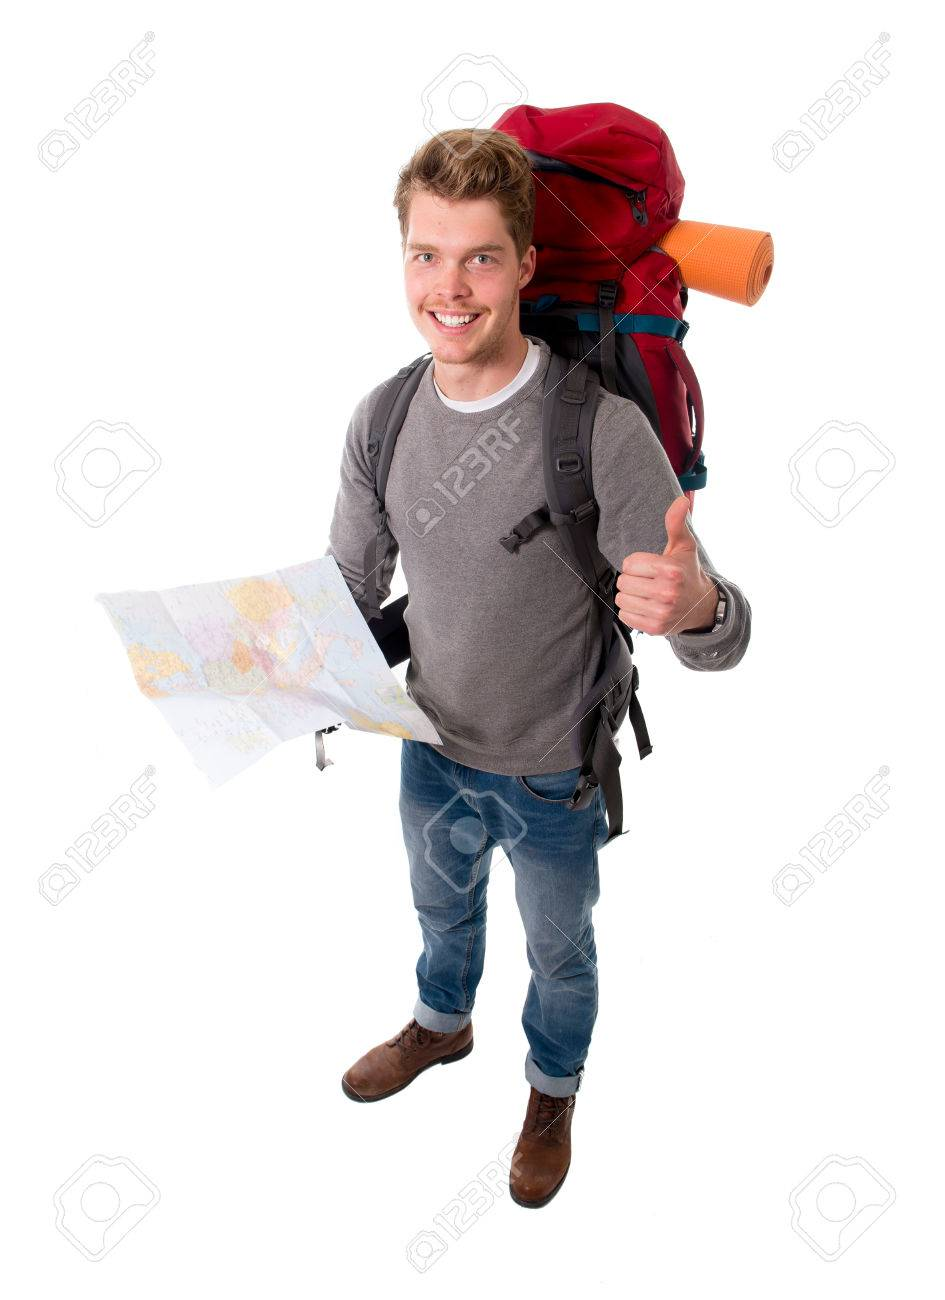 young attractive happy backpacker tourist looking map carrying big backpack  ready for travel and adventure on ba770394cf198